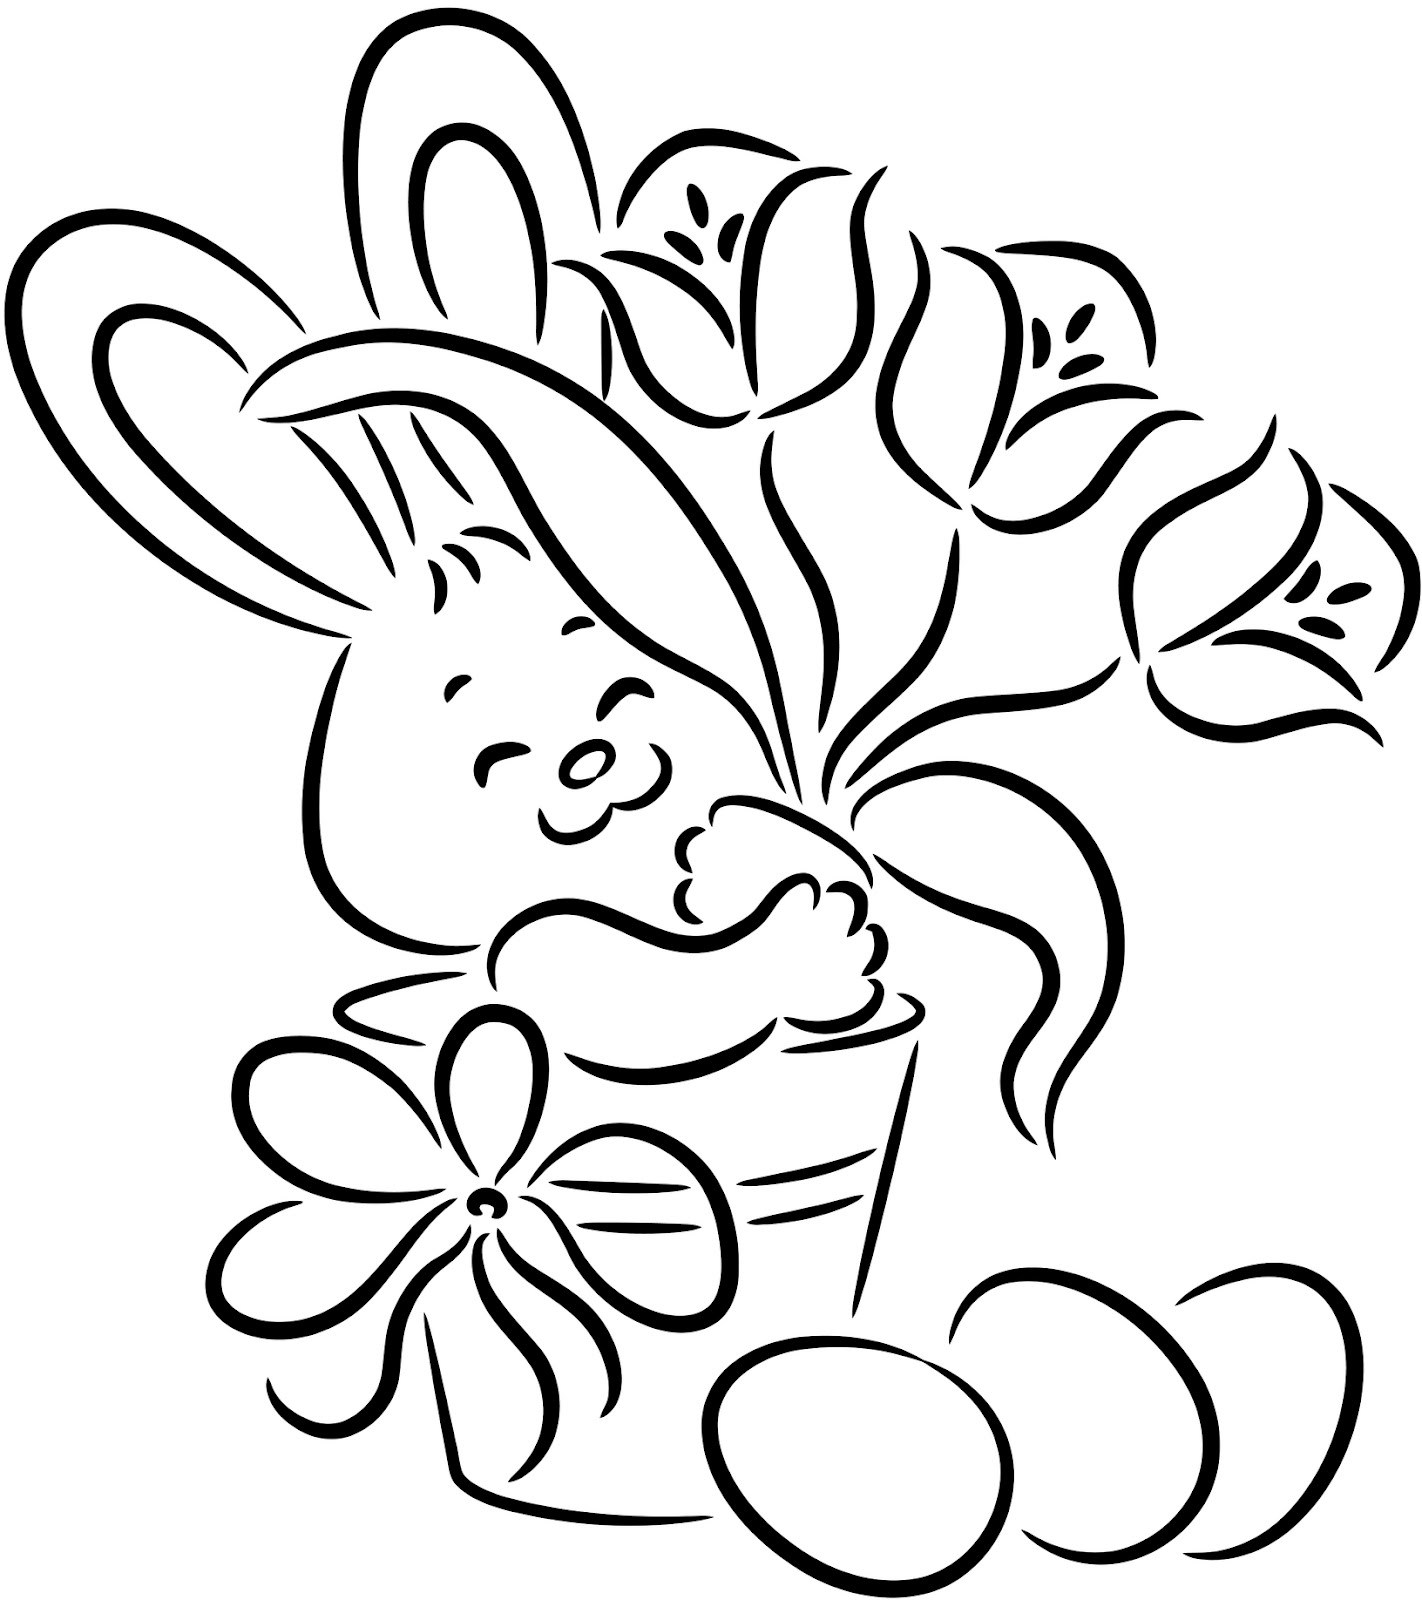 coloring bunnies bunny coloring pages best coloring pages for kids coloring bunnies 1 1